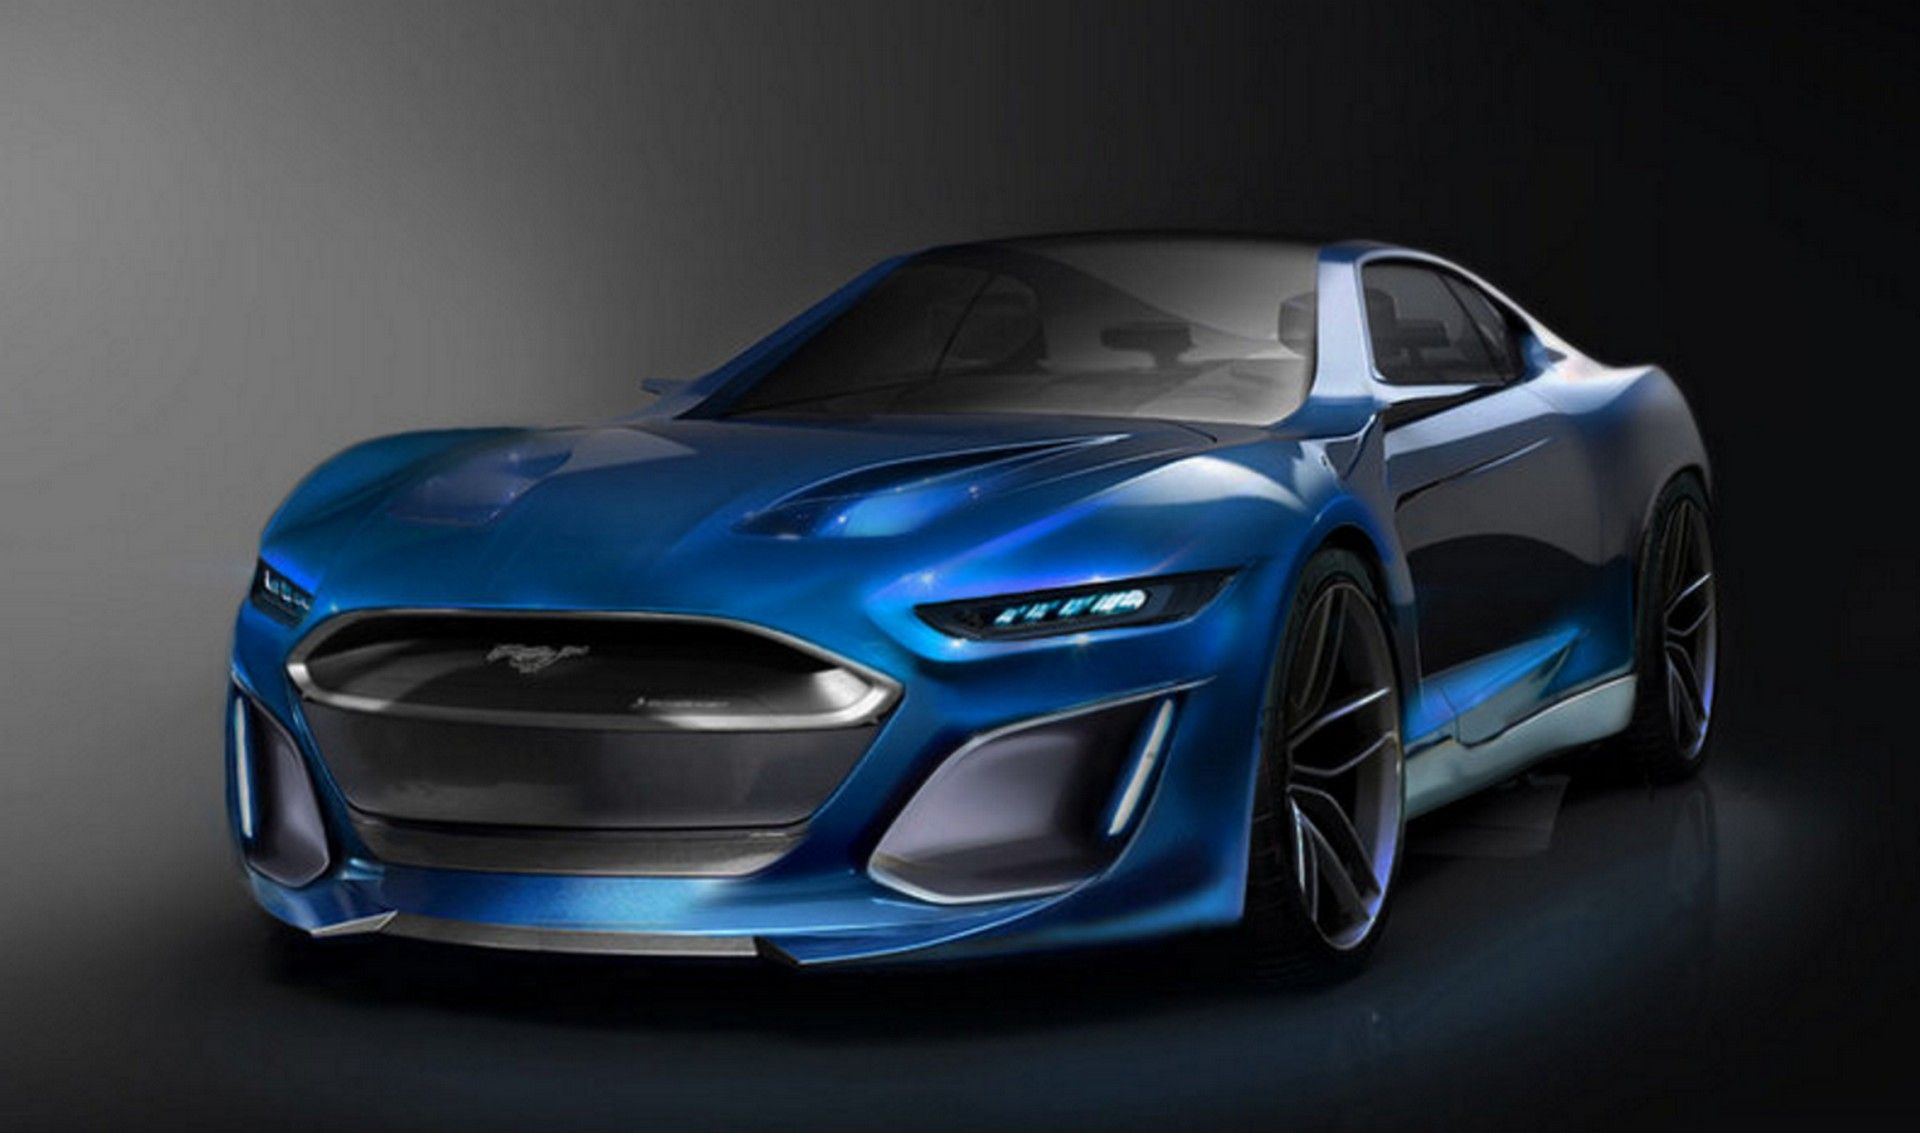 2021 Ford Mustang Concept 2020s And Beyond Ford